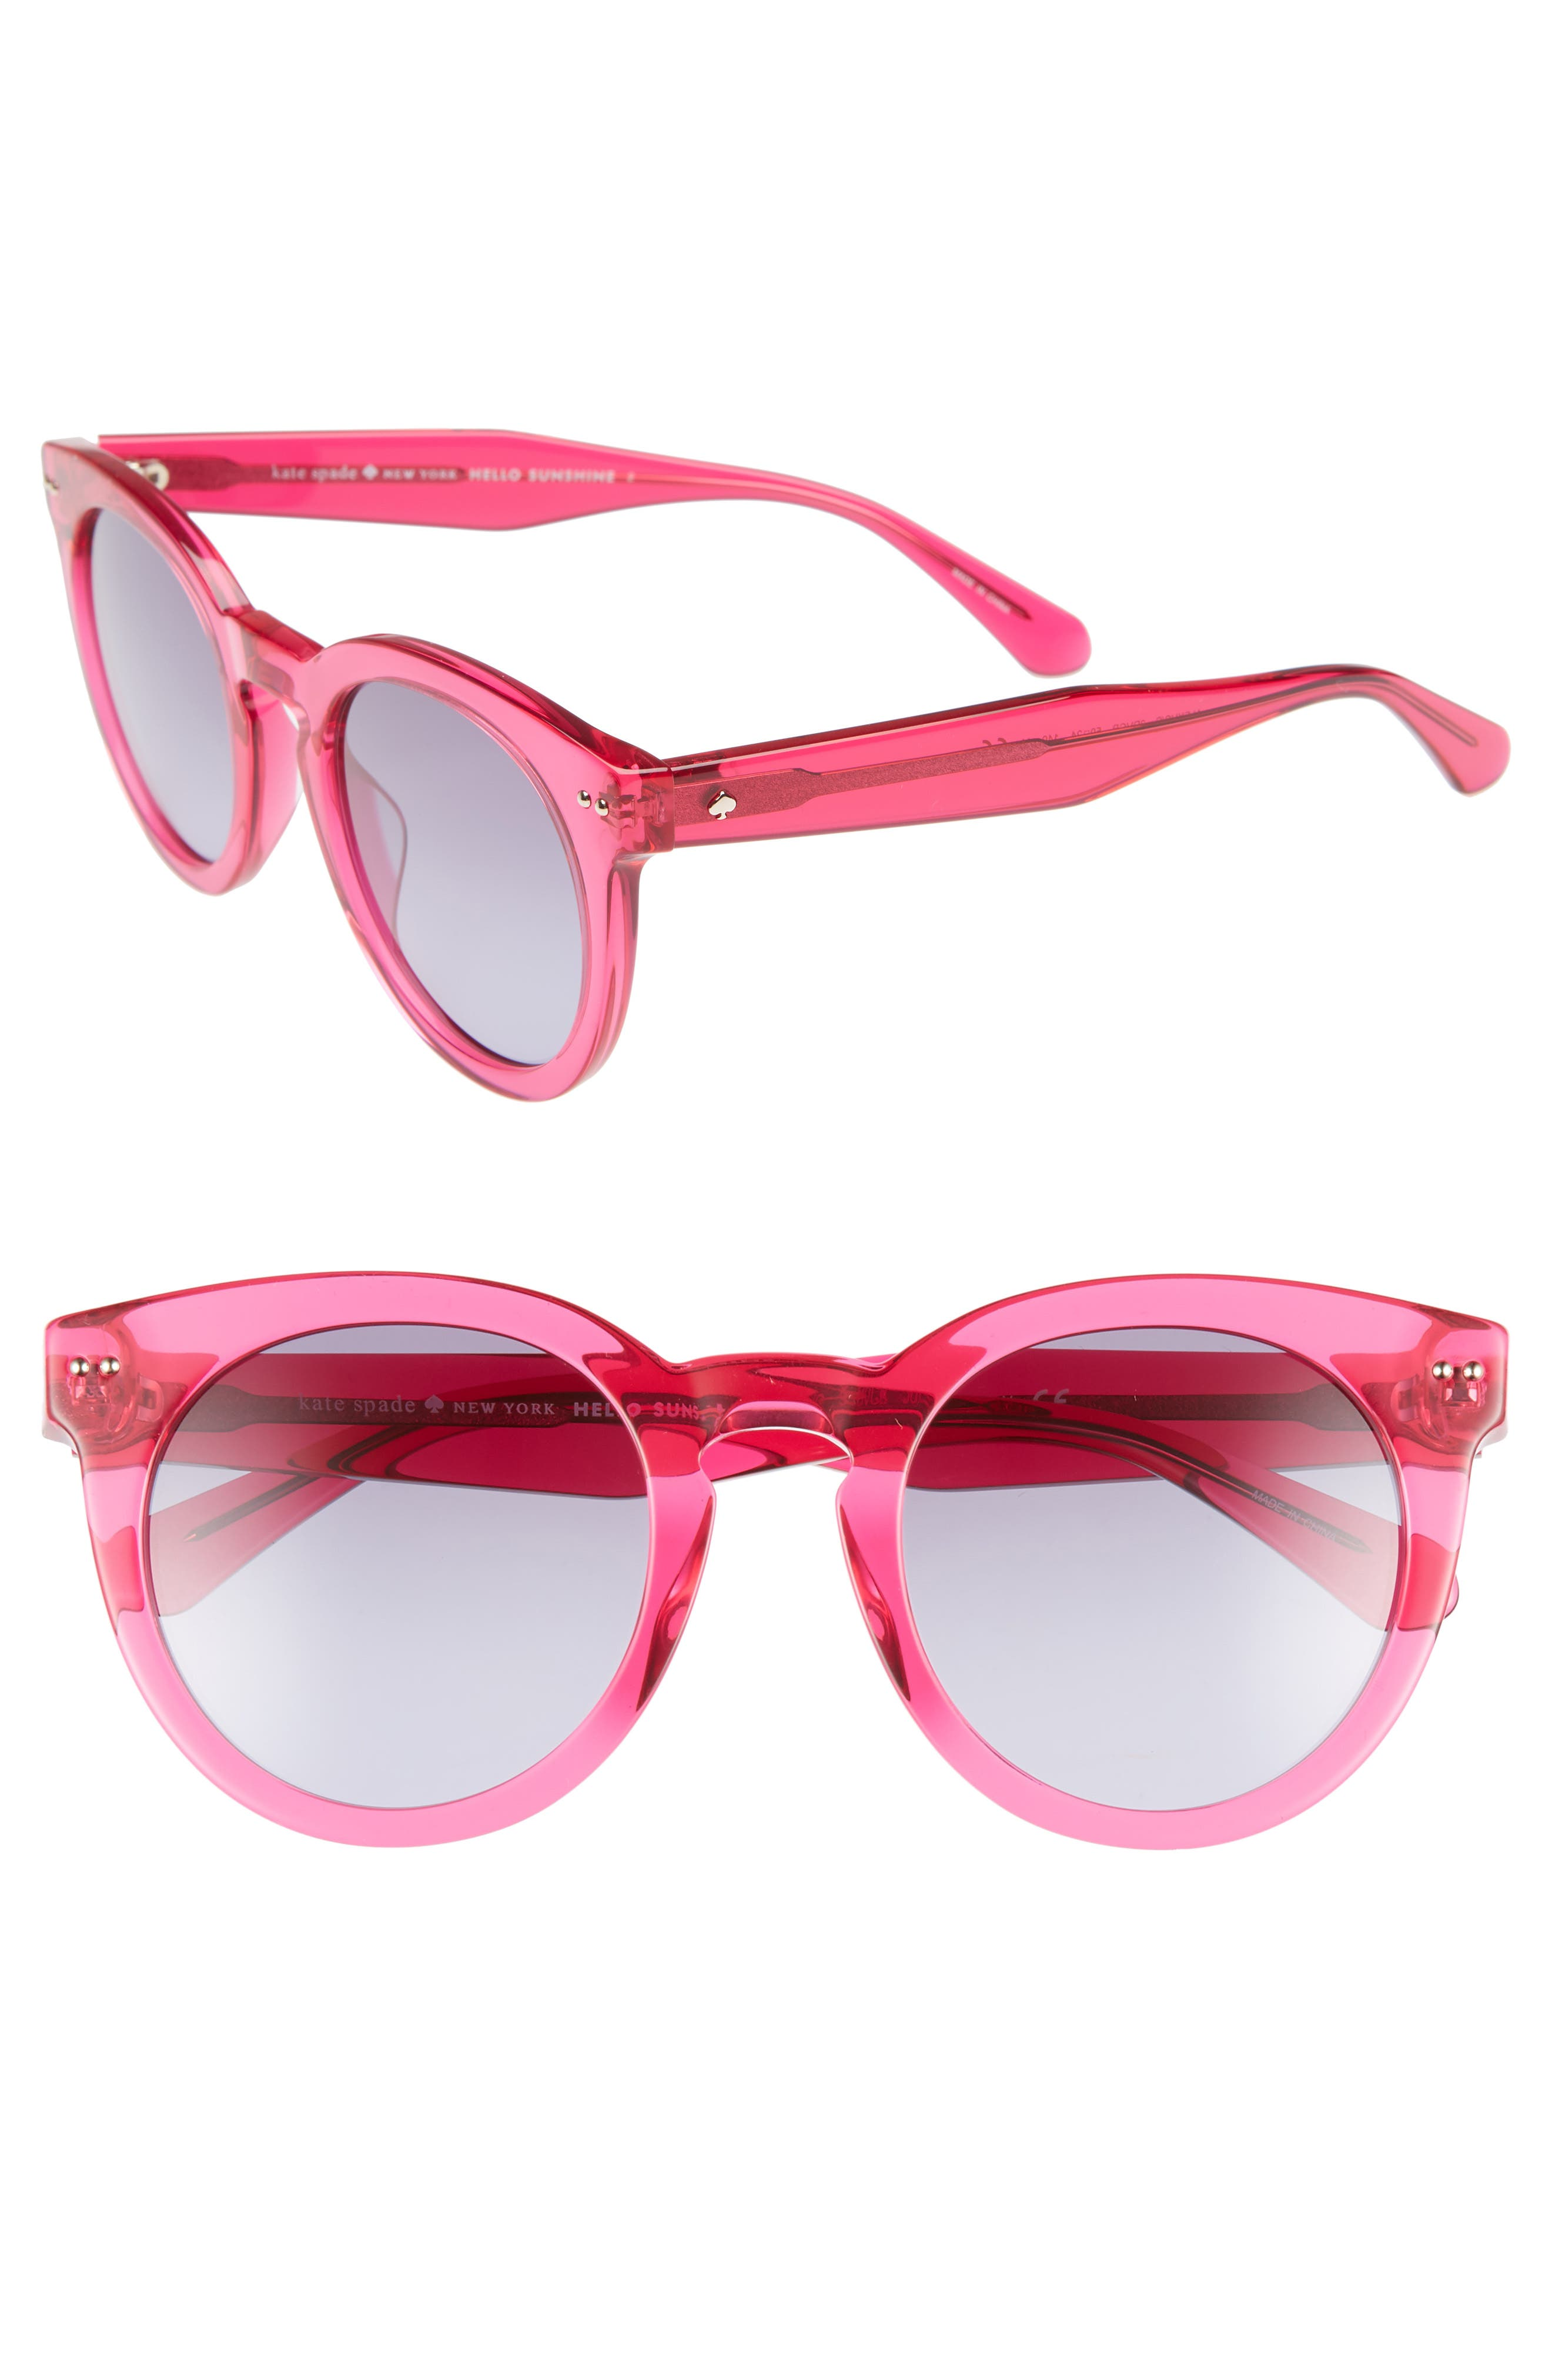 alexuss 50mm round sunglasses,                             Main thumbnail 1, color,                             CRYSTAL PINK